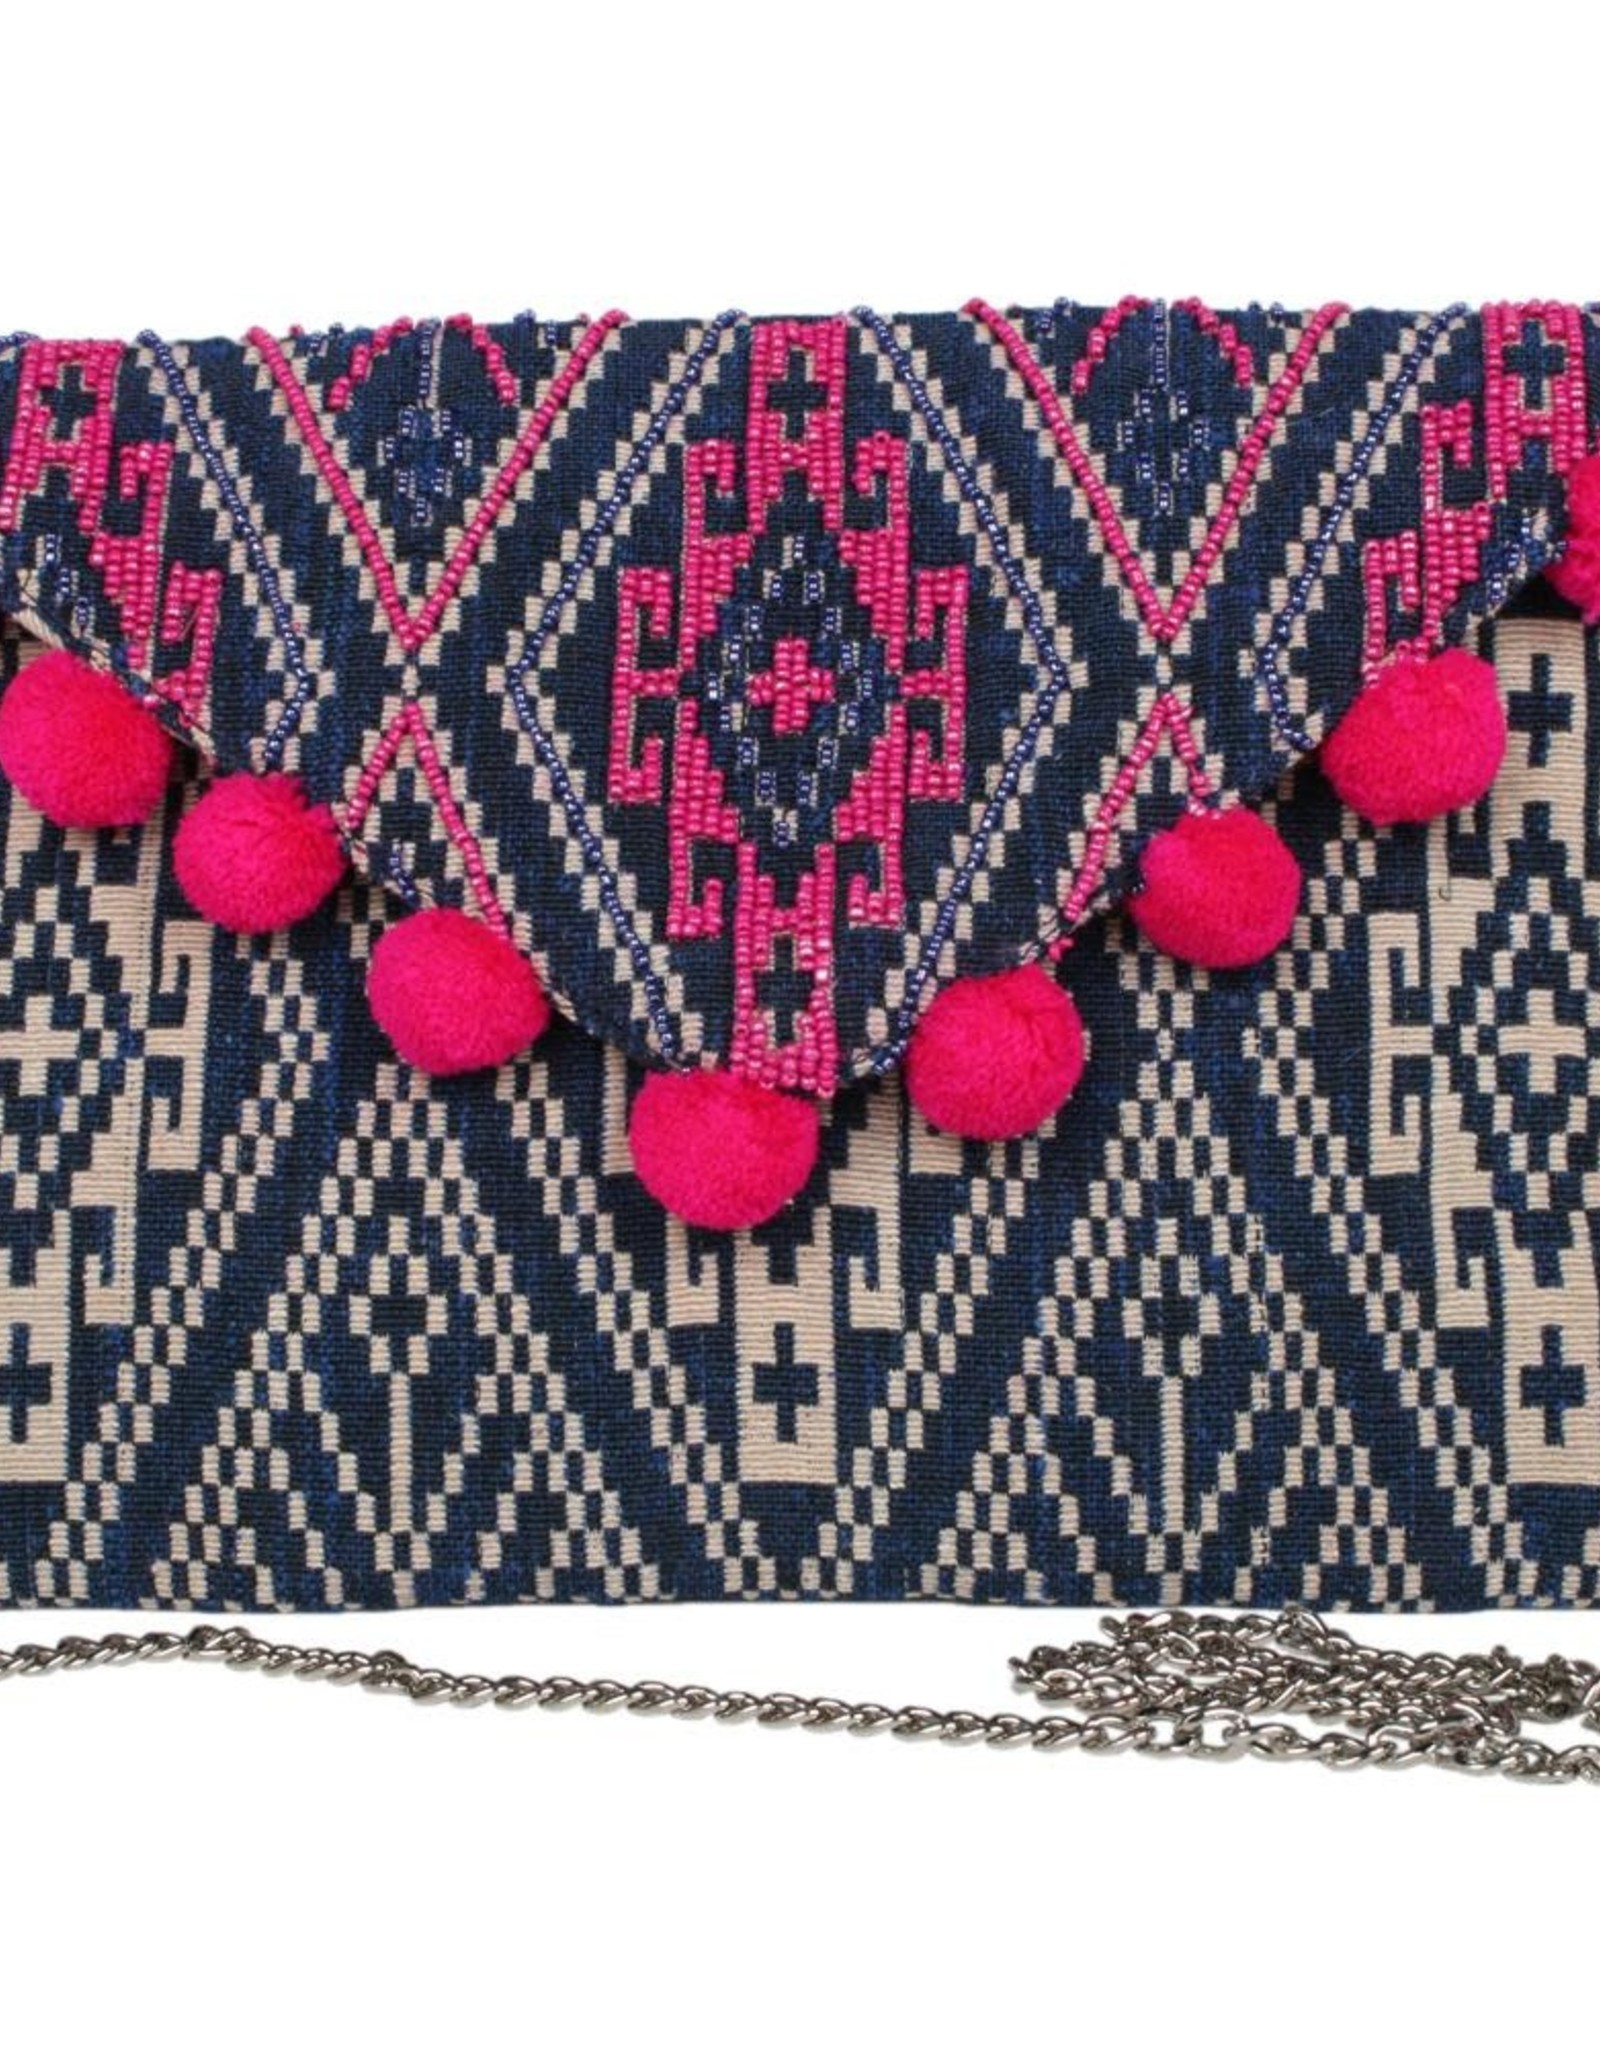 TLC Pom Pom Clutch Purse